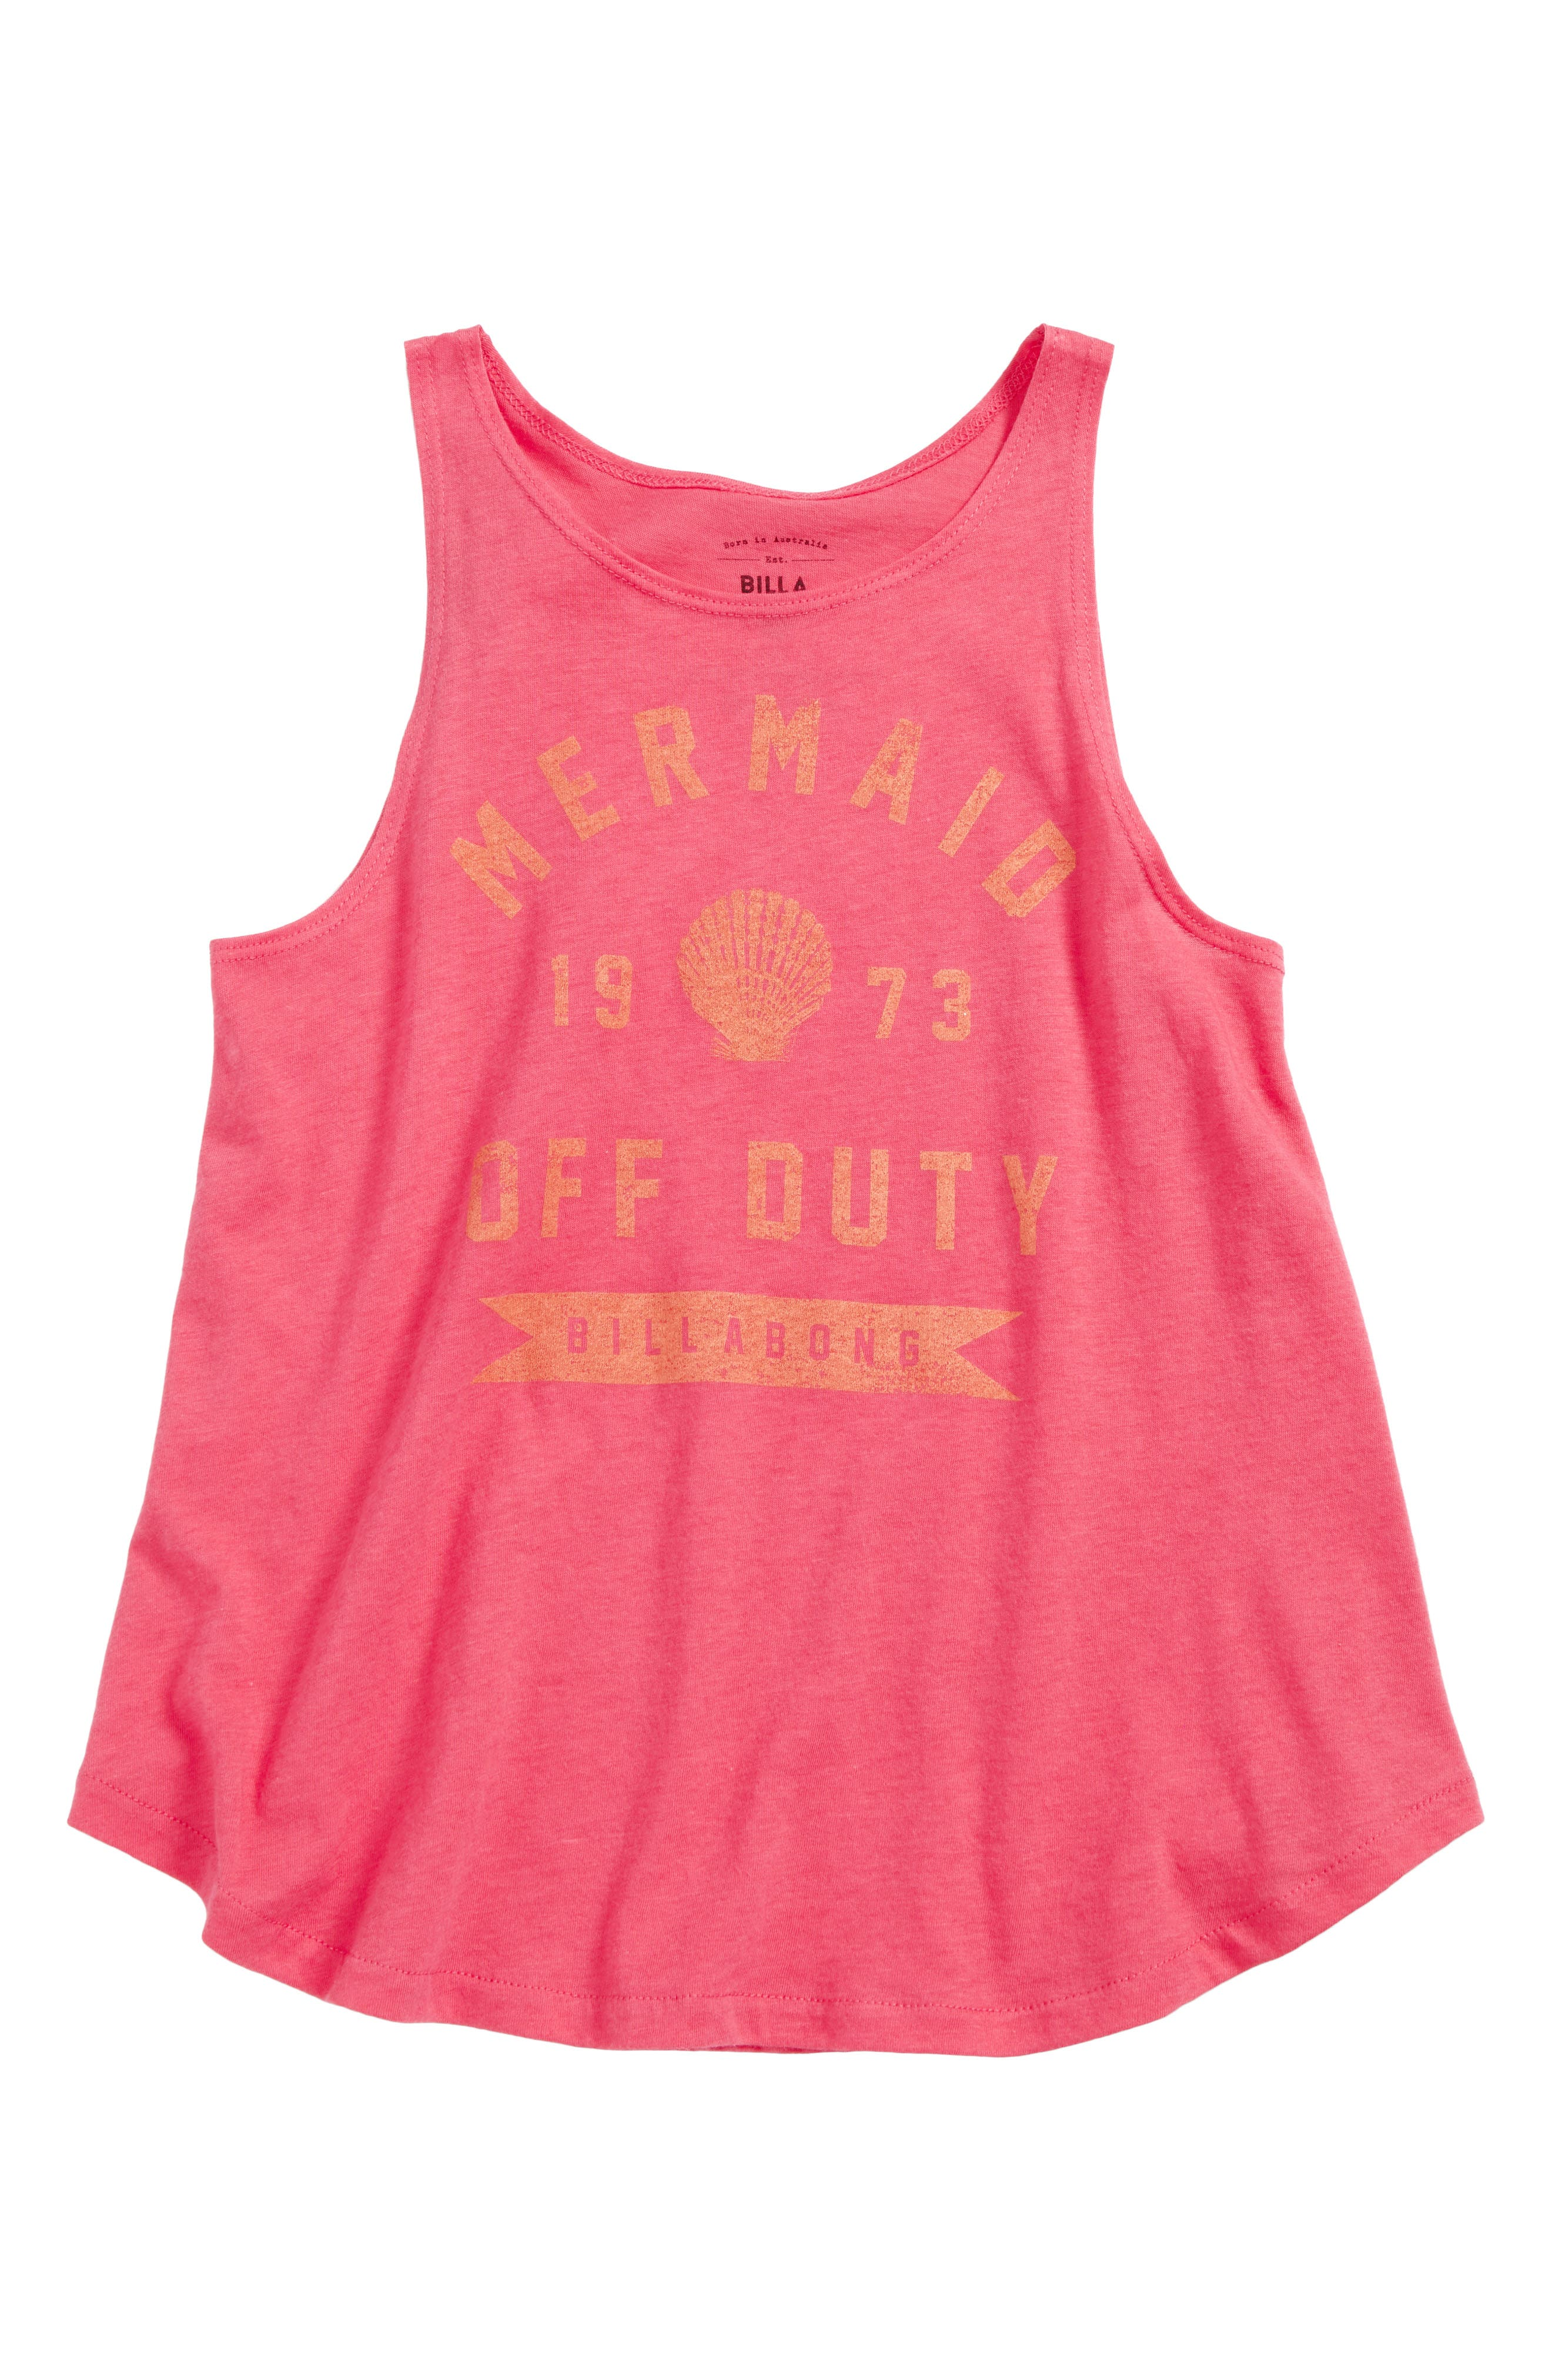 Off Duty Mermaid Graphic Tank,                             Main thumbnail 1, color,                             950